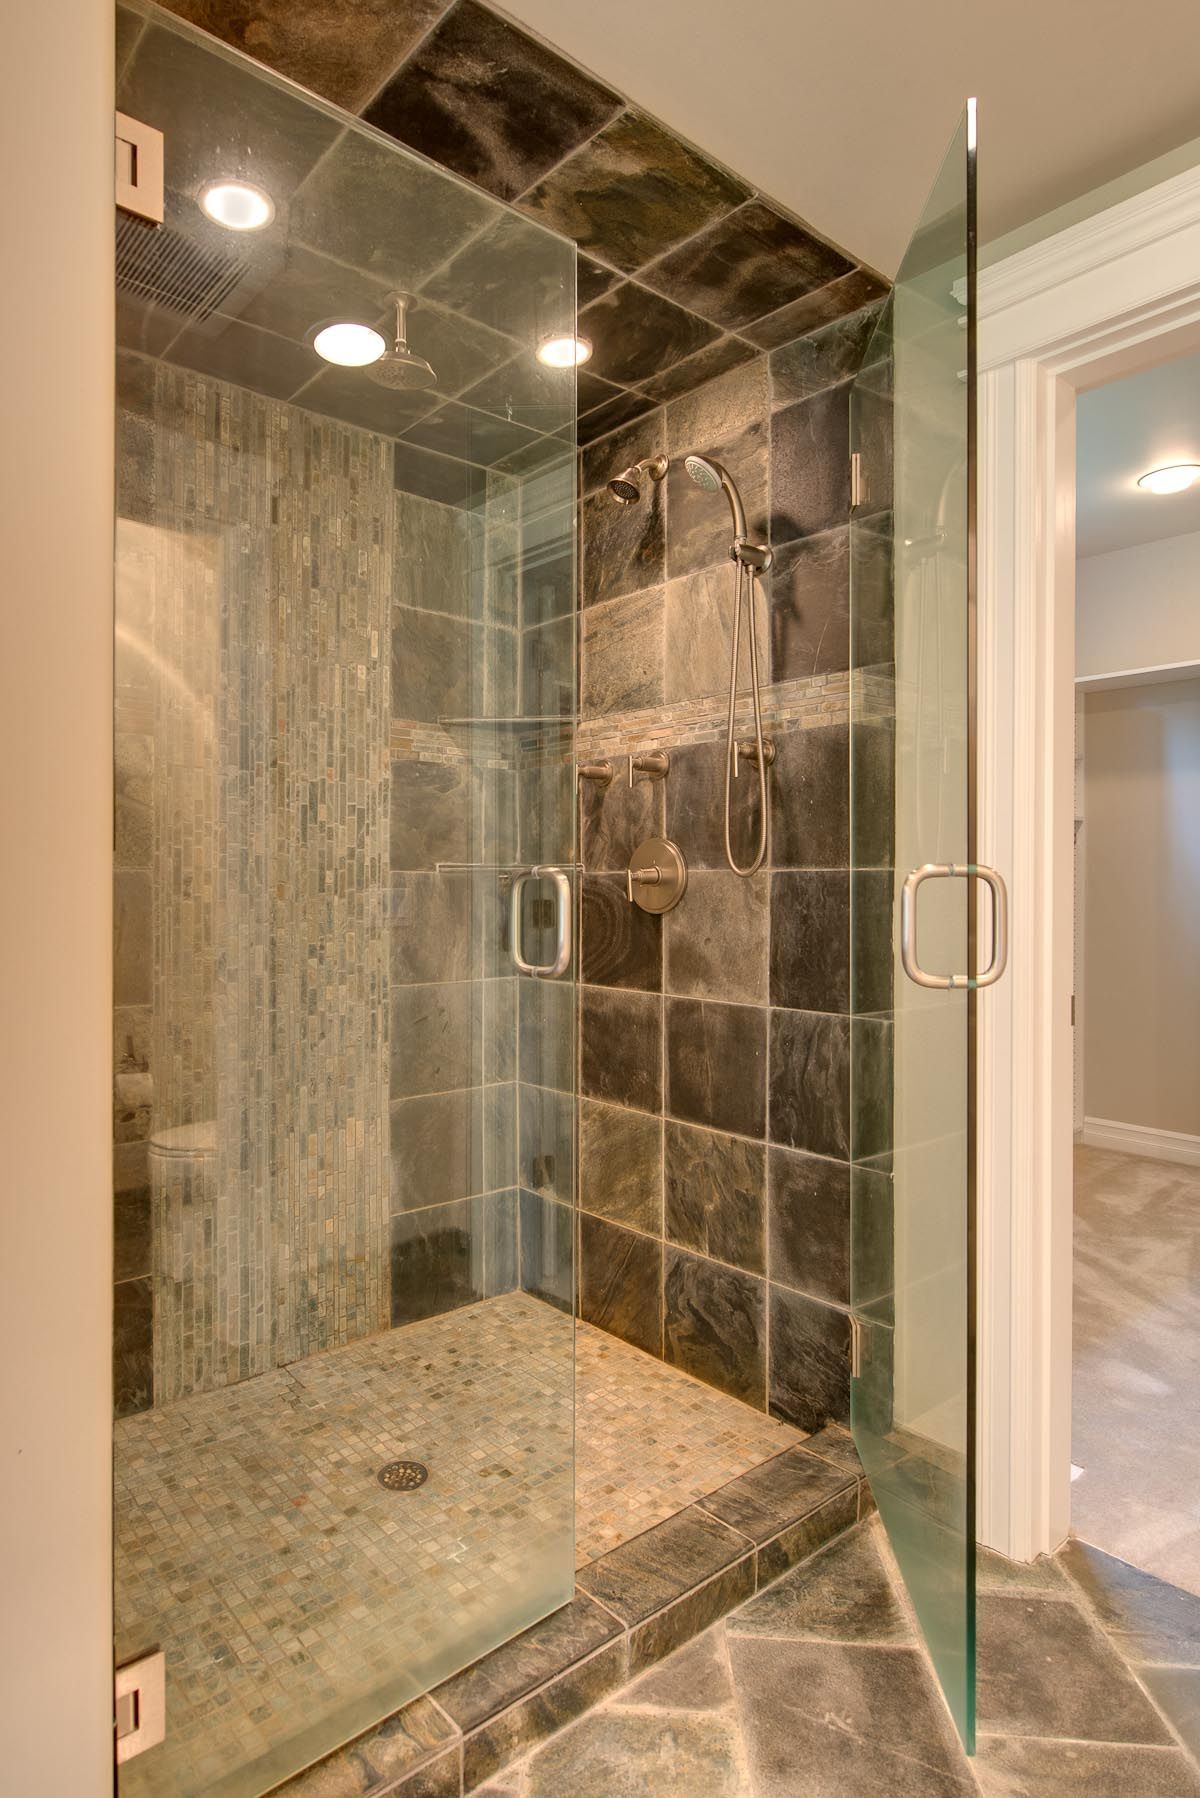 Monumental Mosaic Bathroom Tiles Ideas With Unique Design For The